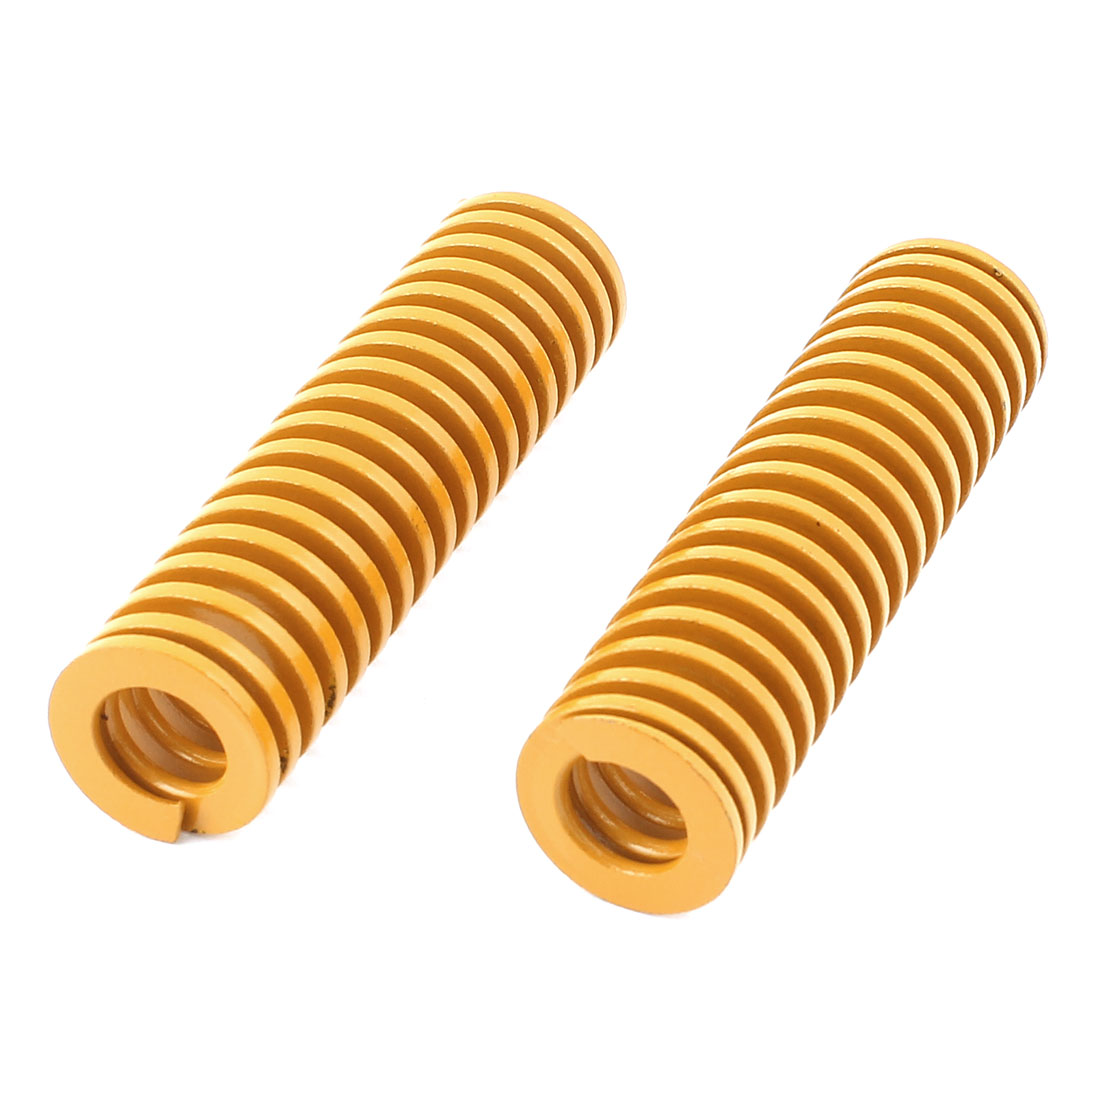 22mm x 80mm Mechanical Metal Spiral Compression Coil Spring Yellow 2 Pcs